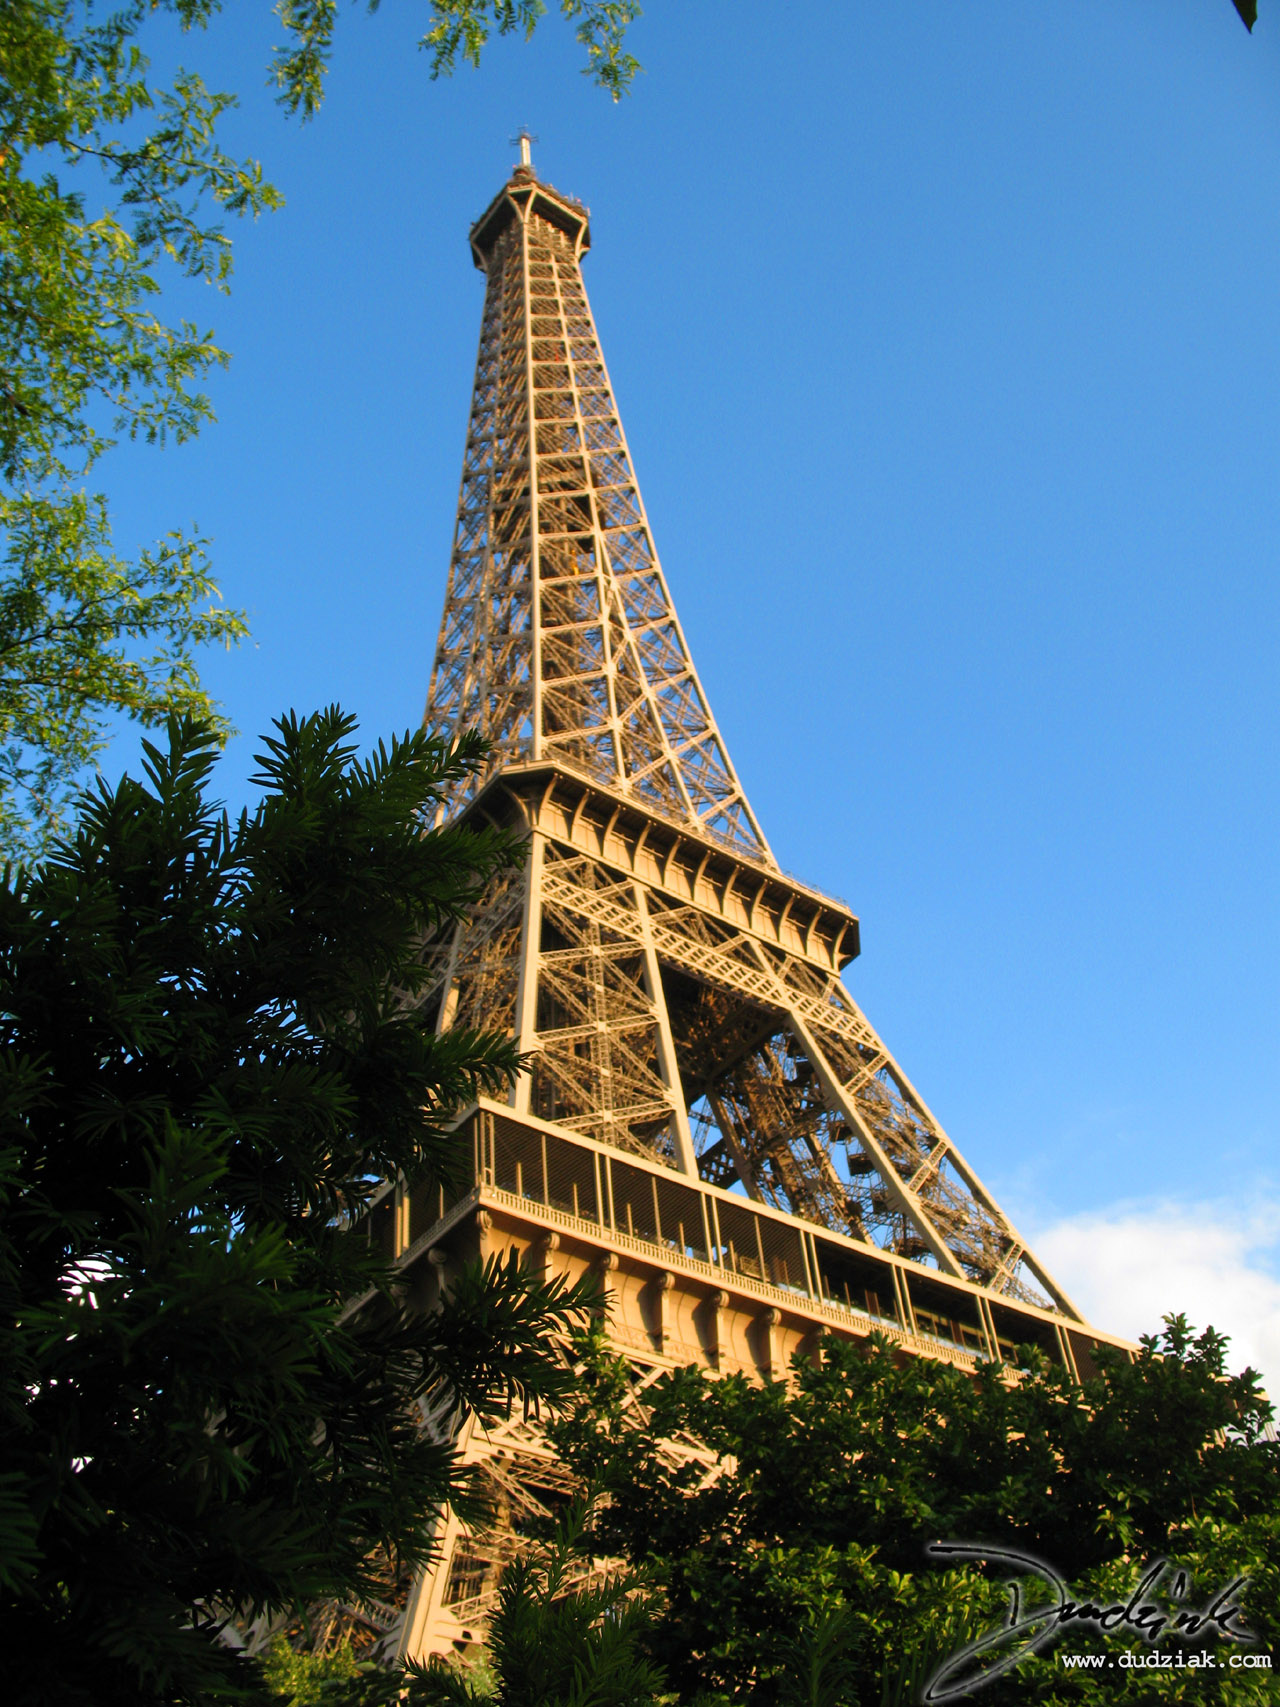 Eiffel Tower,  Blue Sky,  Trees,  Tour Eiffel